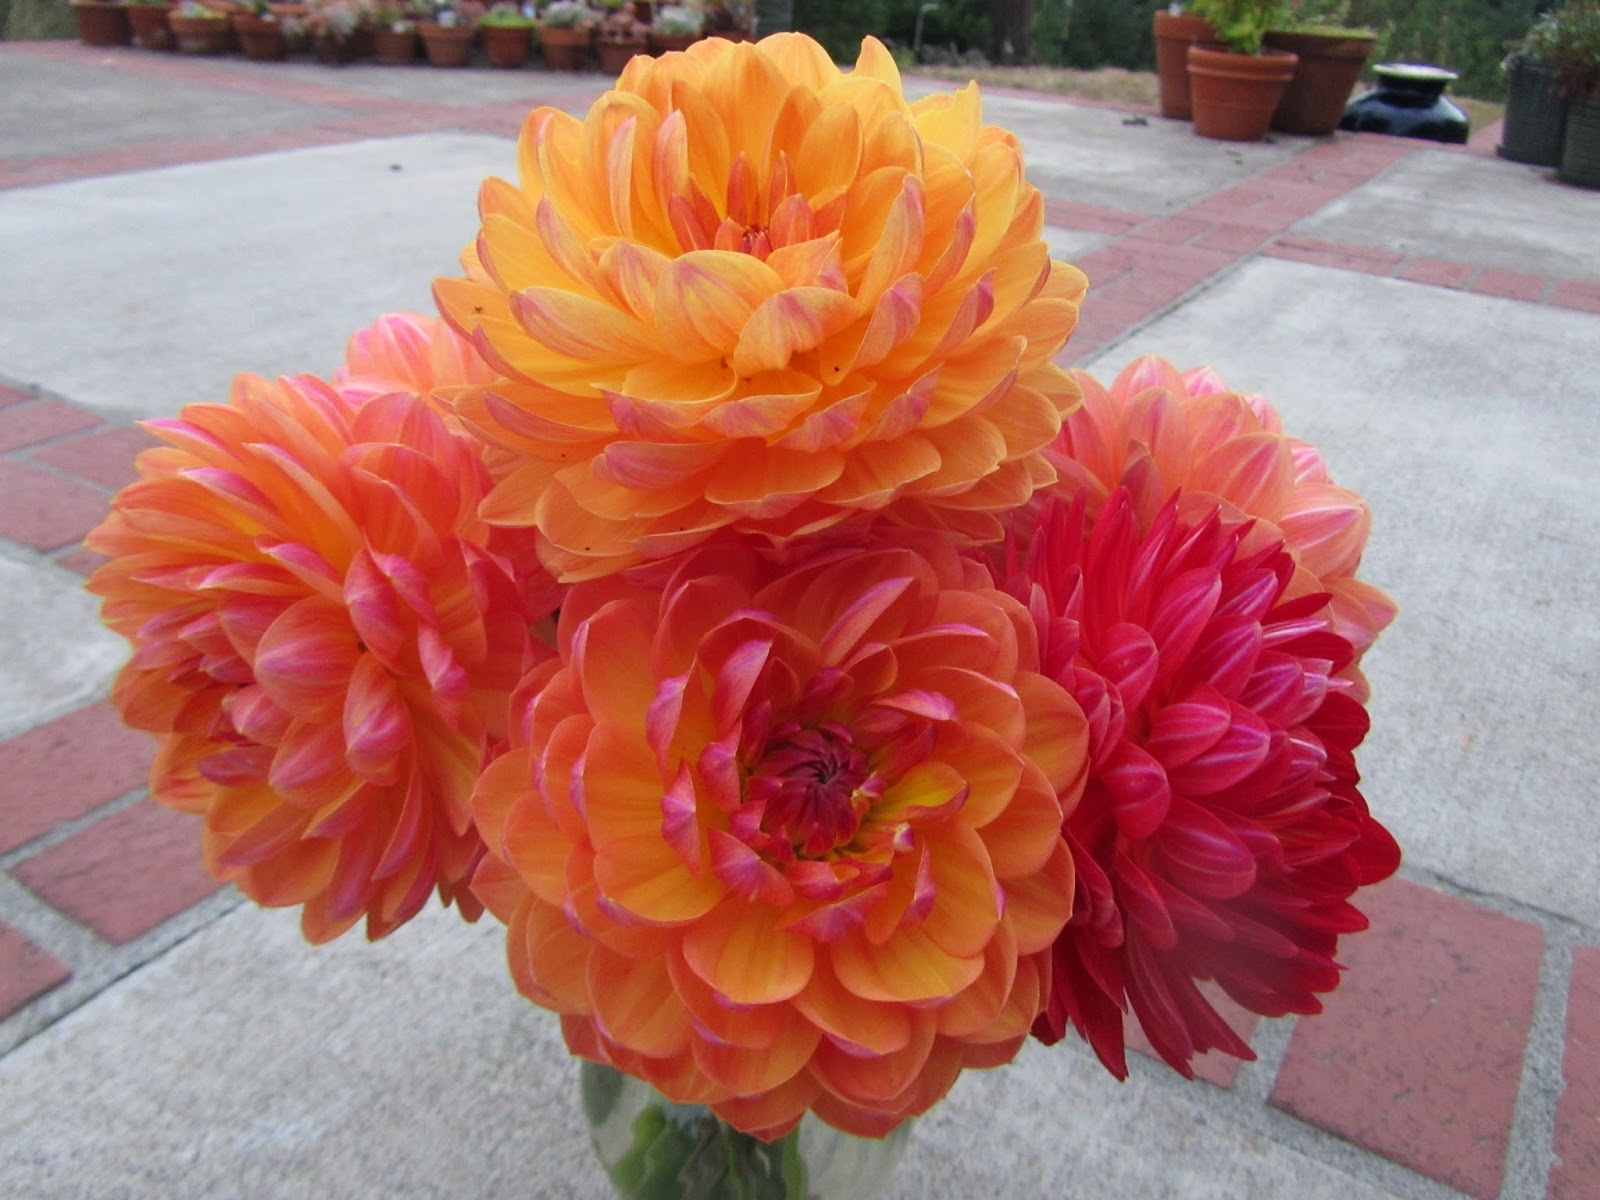 Lane County Dahlia Society April Tuber Auction And Sale